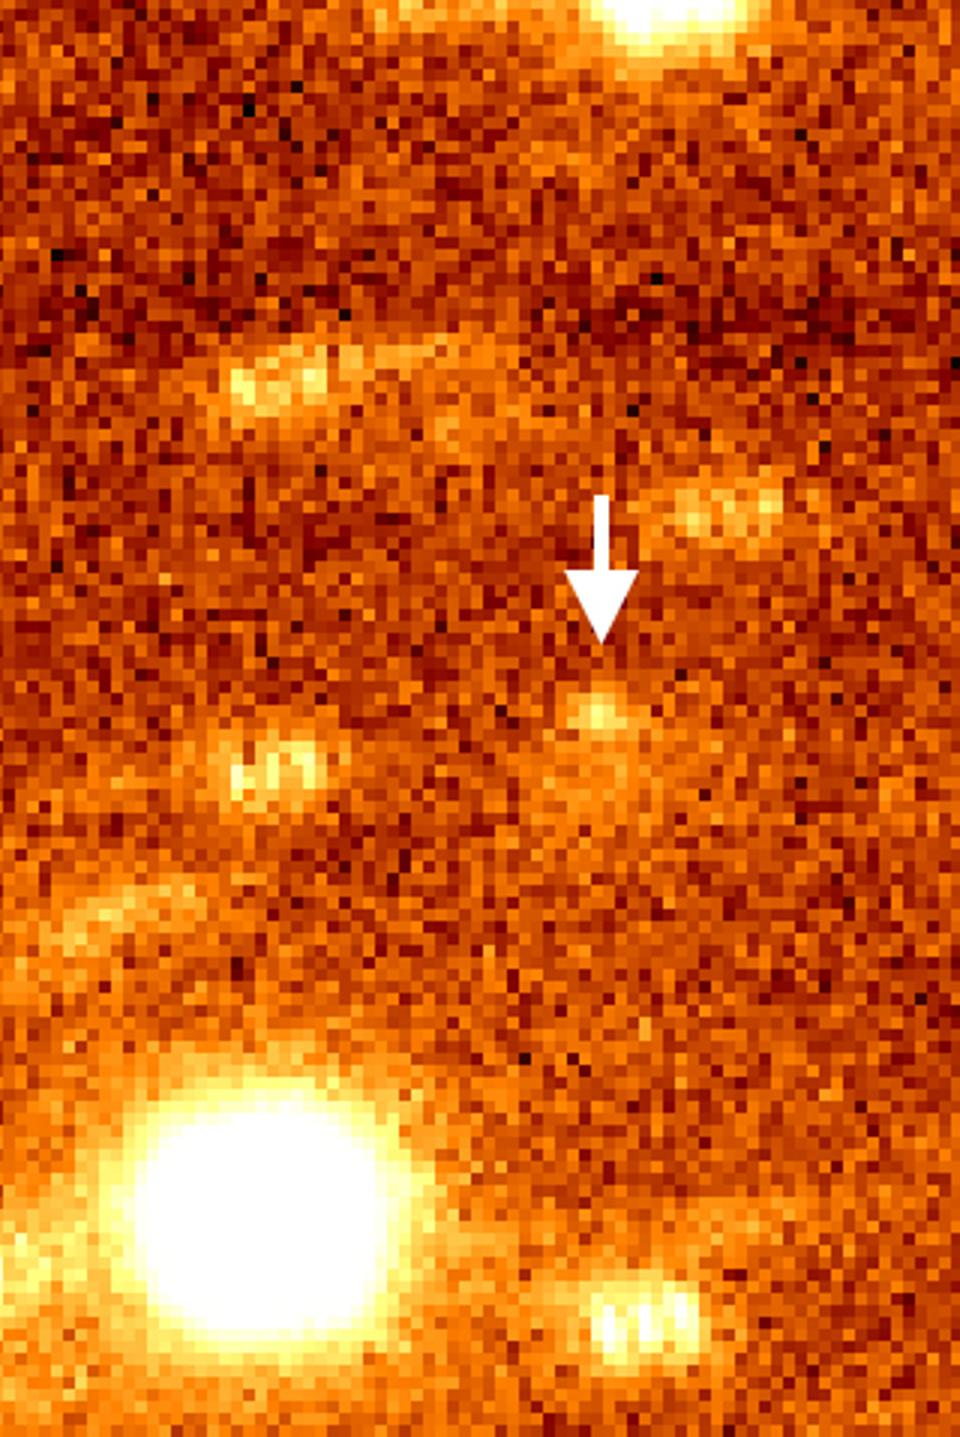 Image of 12P on June 17, 2020 with the comet marked by an arrow.